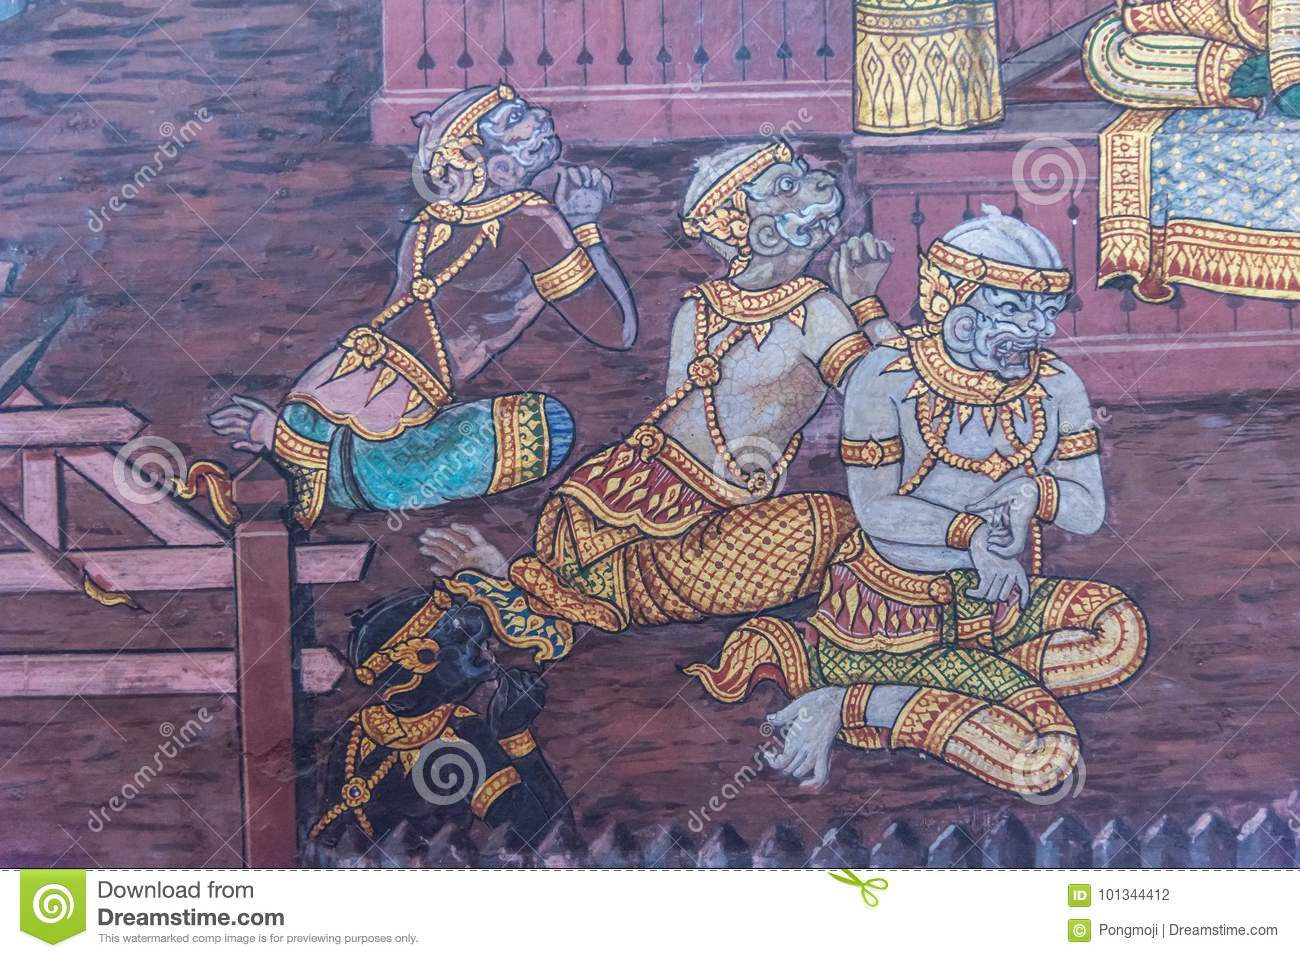 Art Painting On The Wall About Ramayana Story Editorial